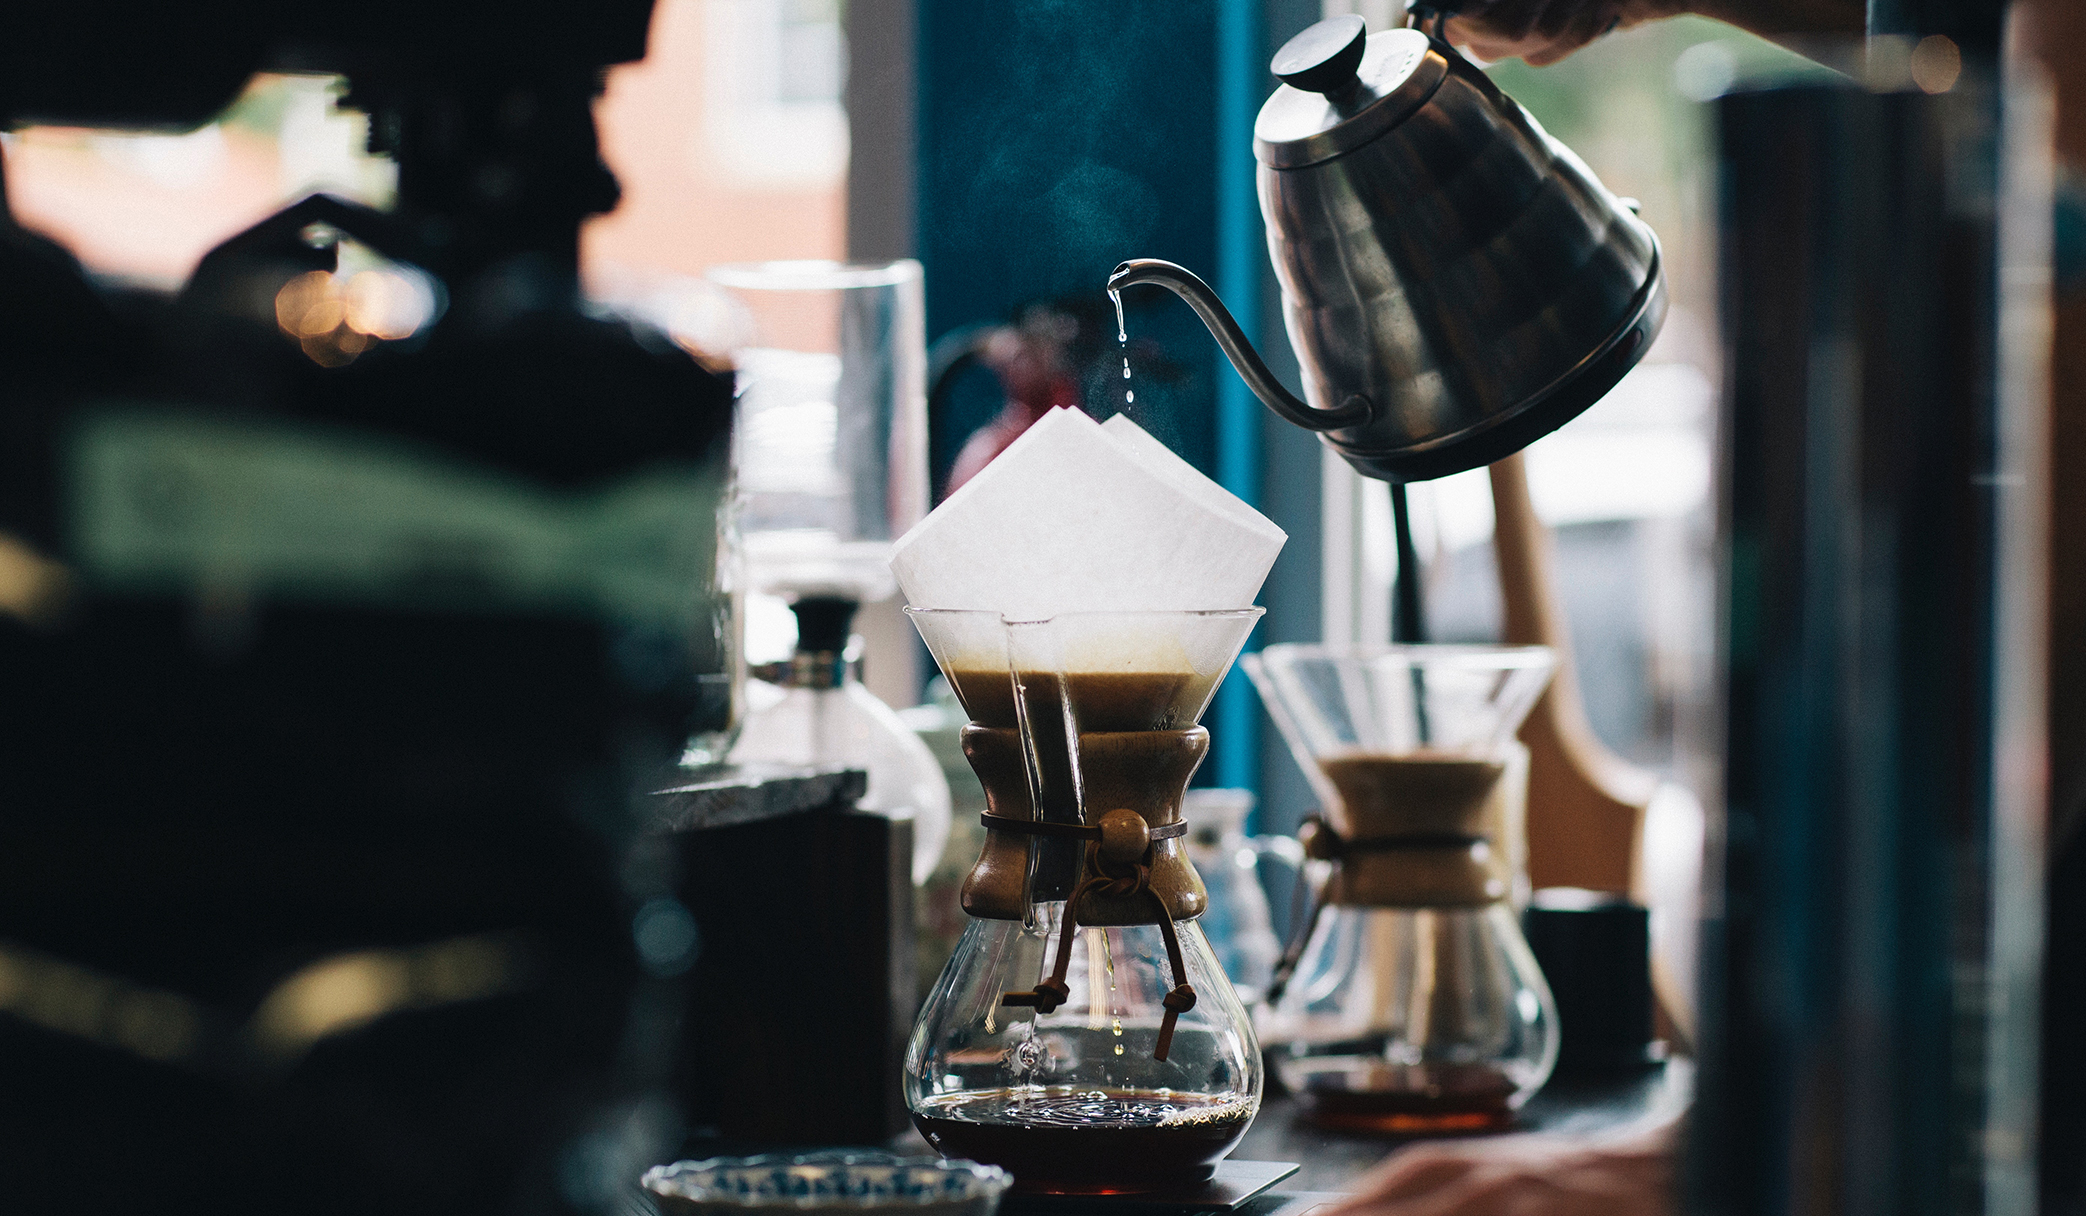 The slow, meditative process of pour over coffee